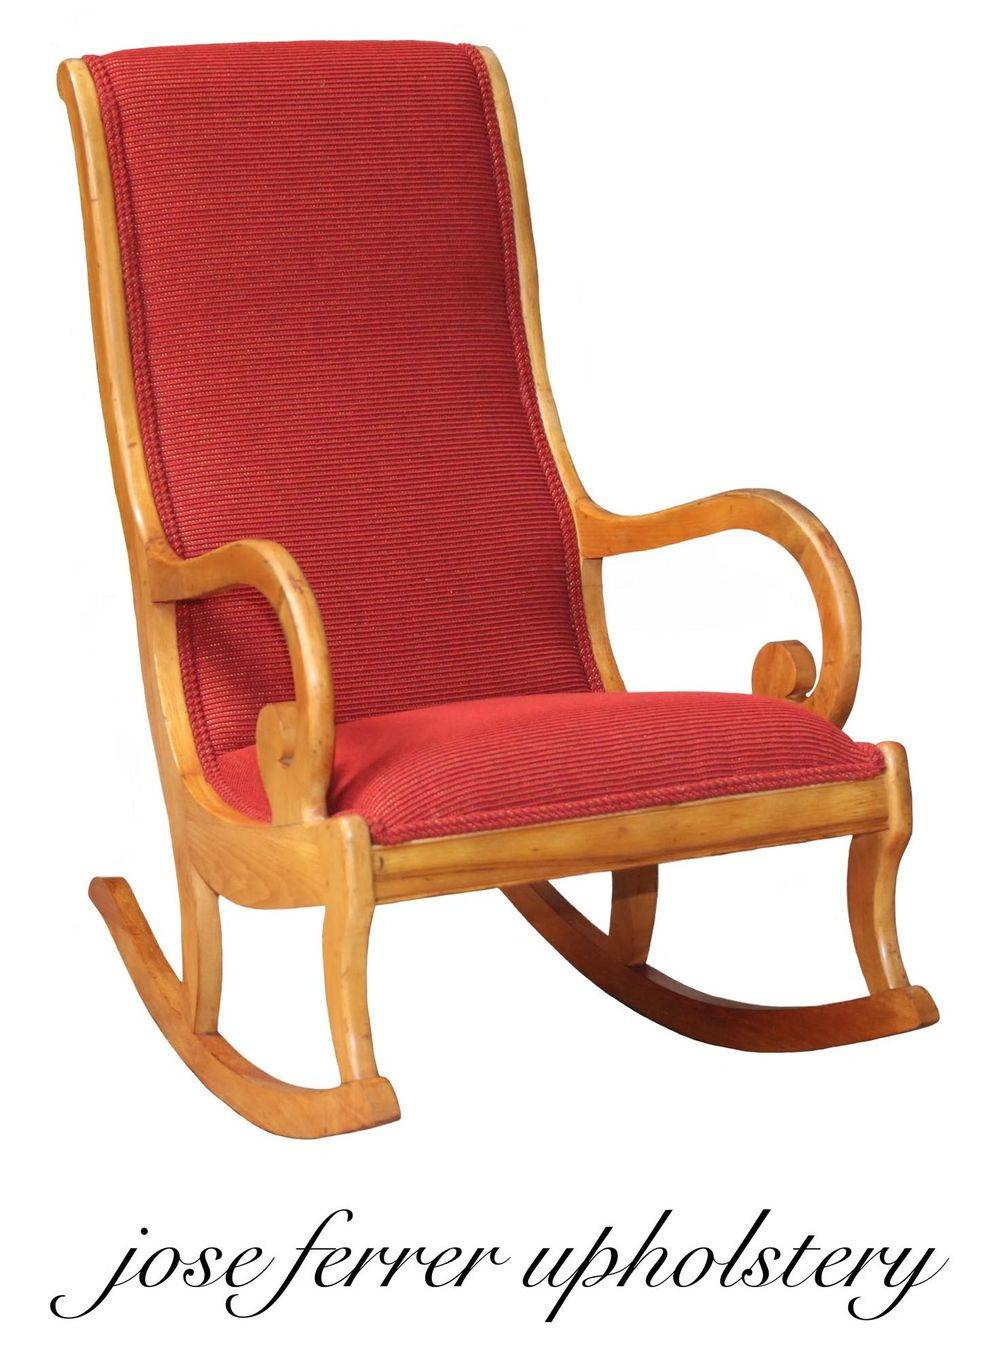 pullover rocking chair finished in red fabric